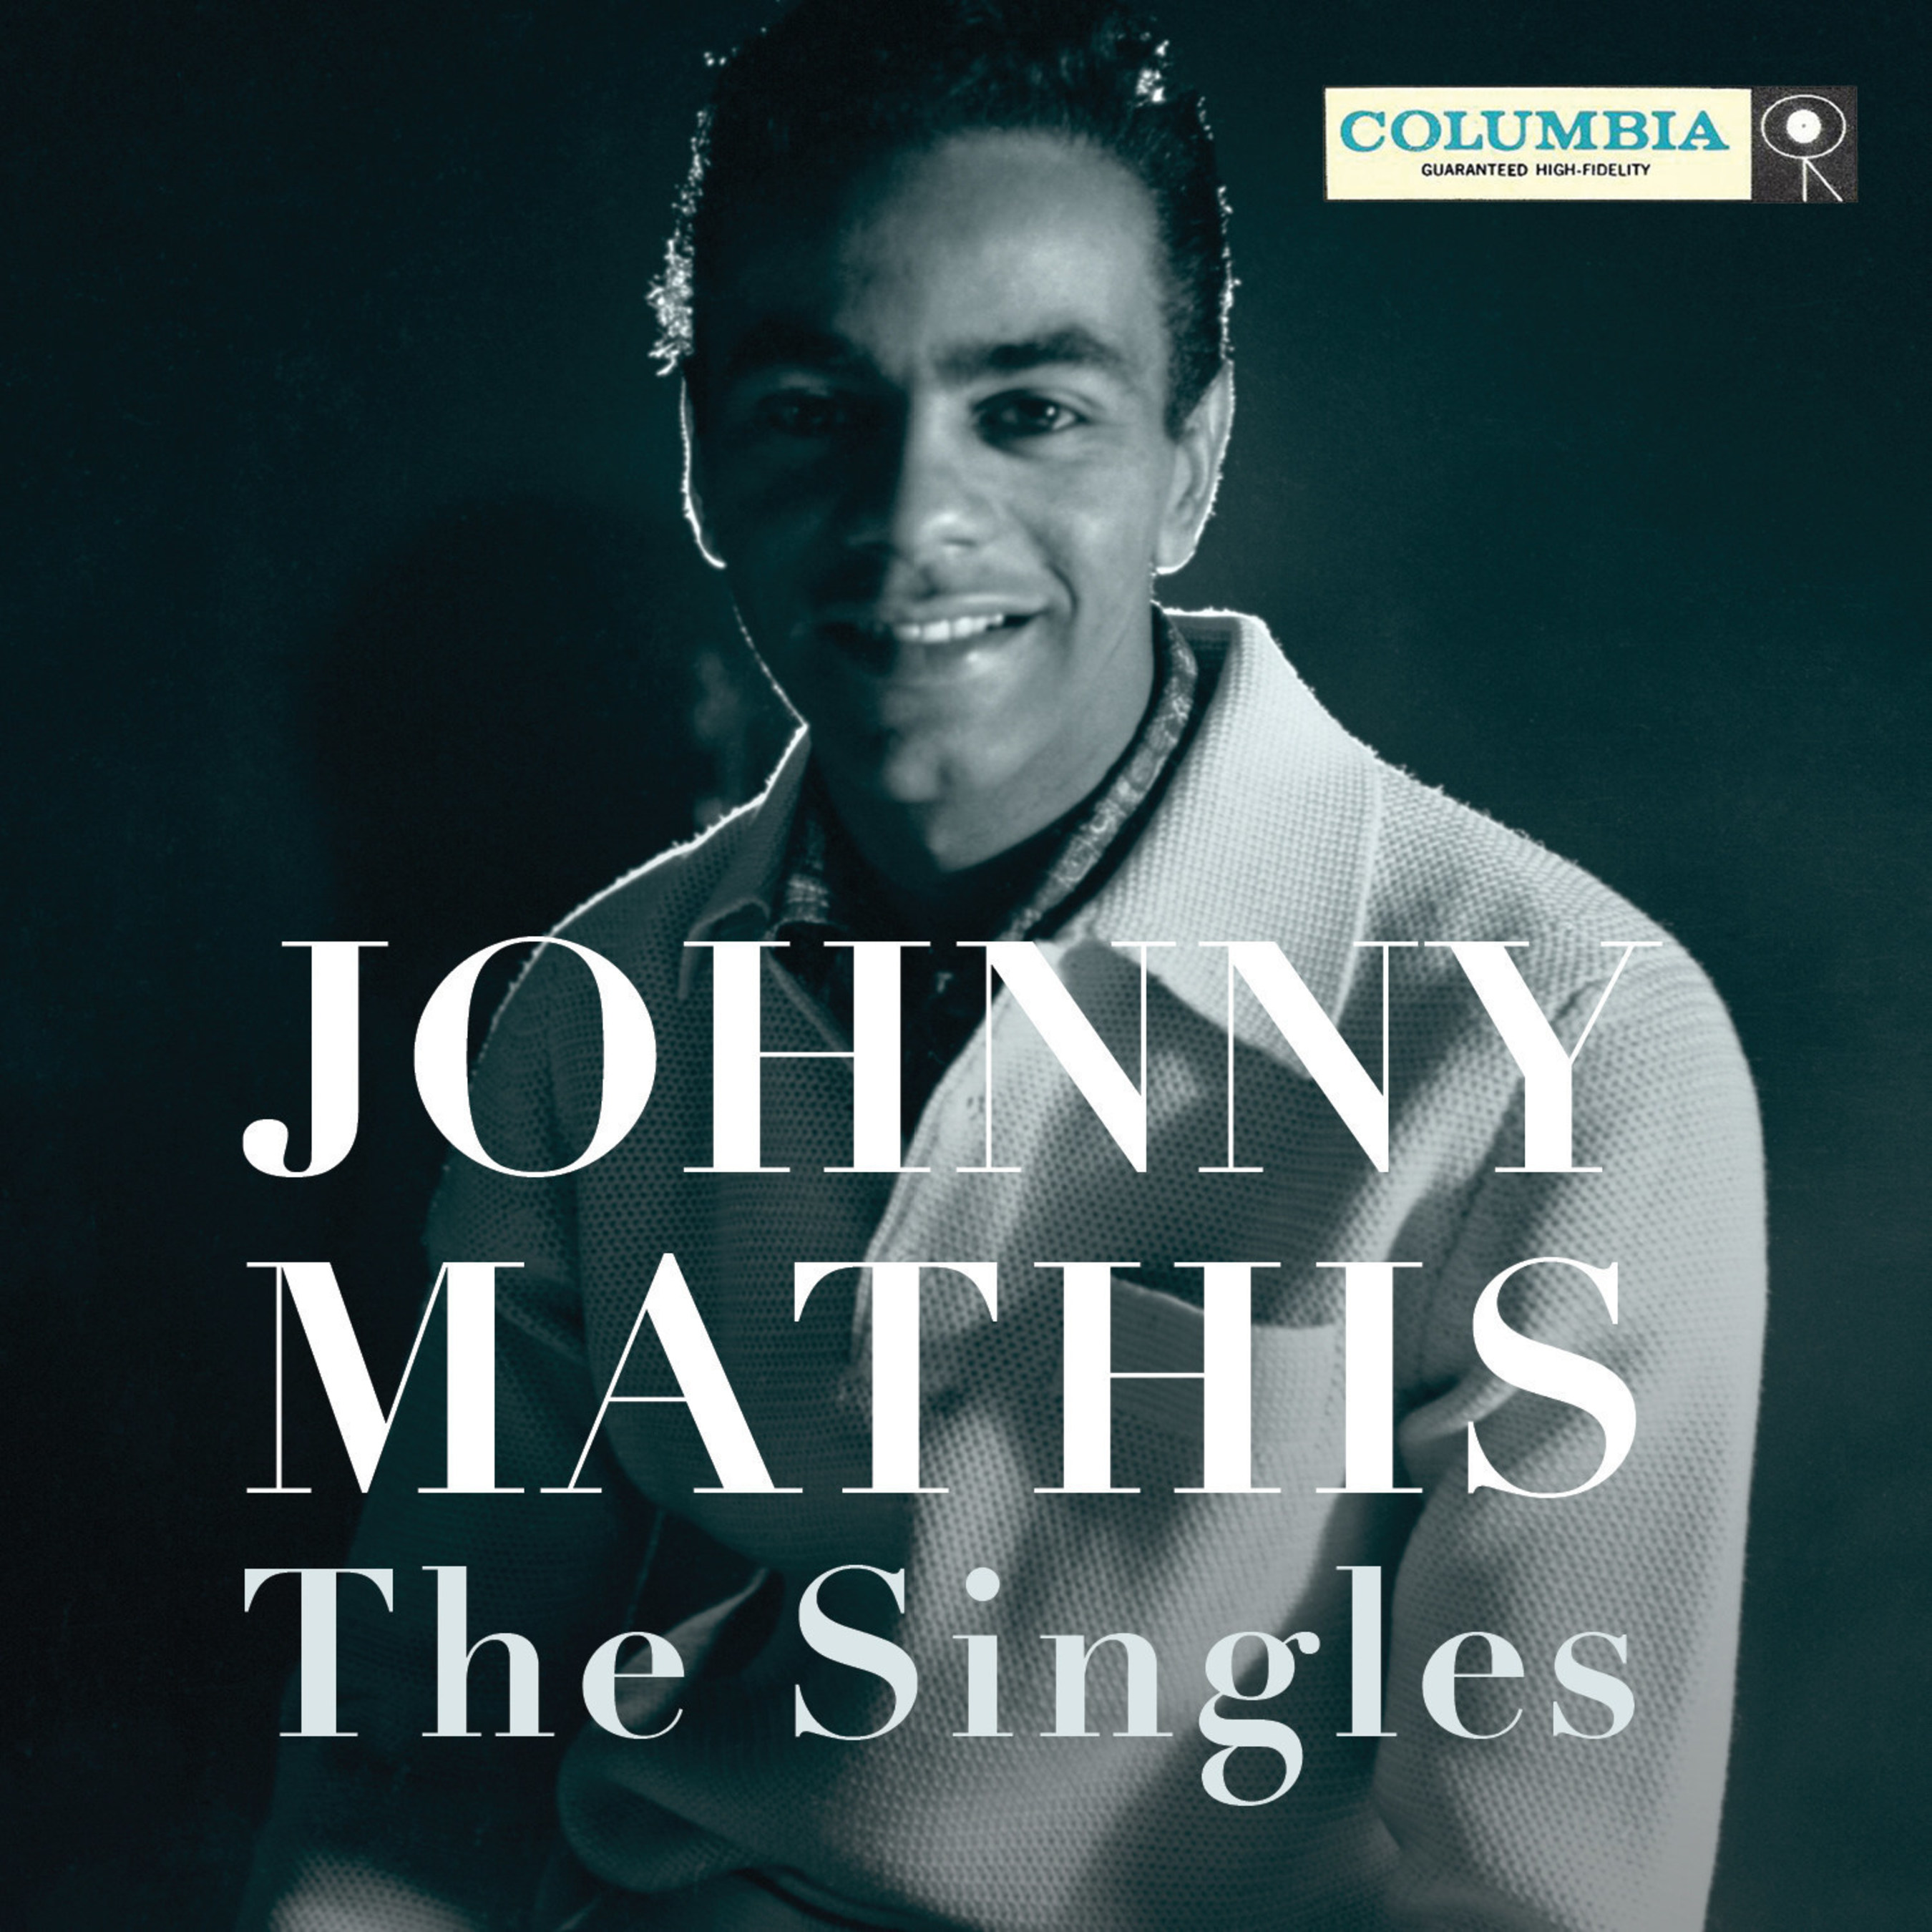 Legacy Recordings and Columbia Records Celebrate Johnny Mathis's 80th Birthday with Release of Johnny Mathis: The Singles on September 25, 2015